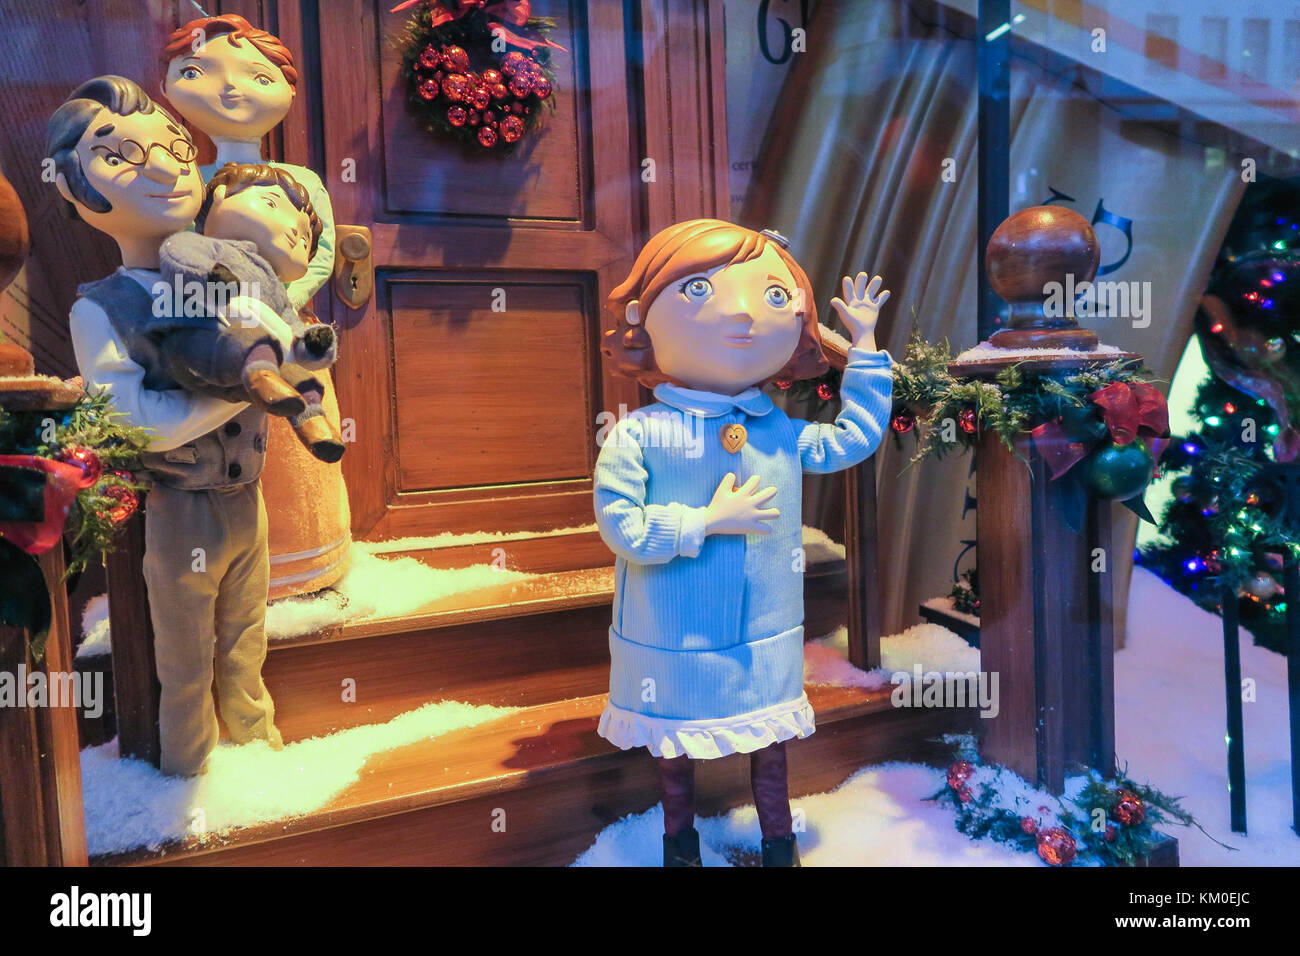 Christmas Season at R.H. Macy Flagship Department Store in Herald Square, NYC, USA - Stock Image